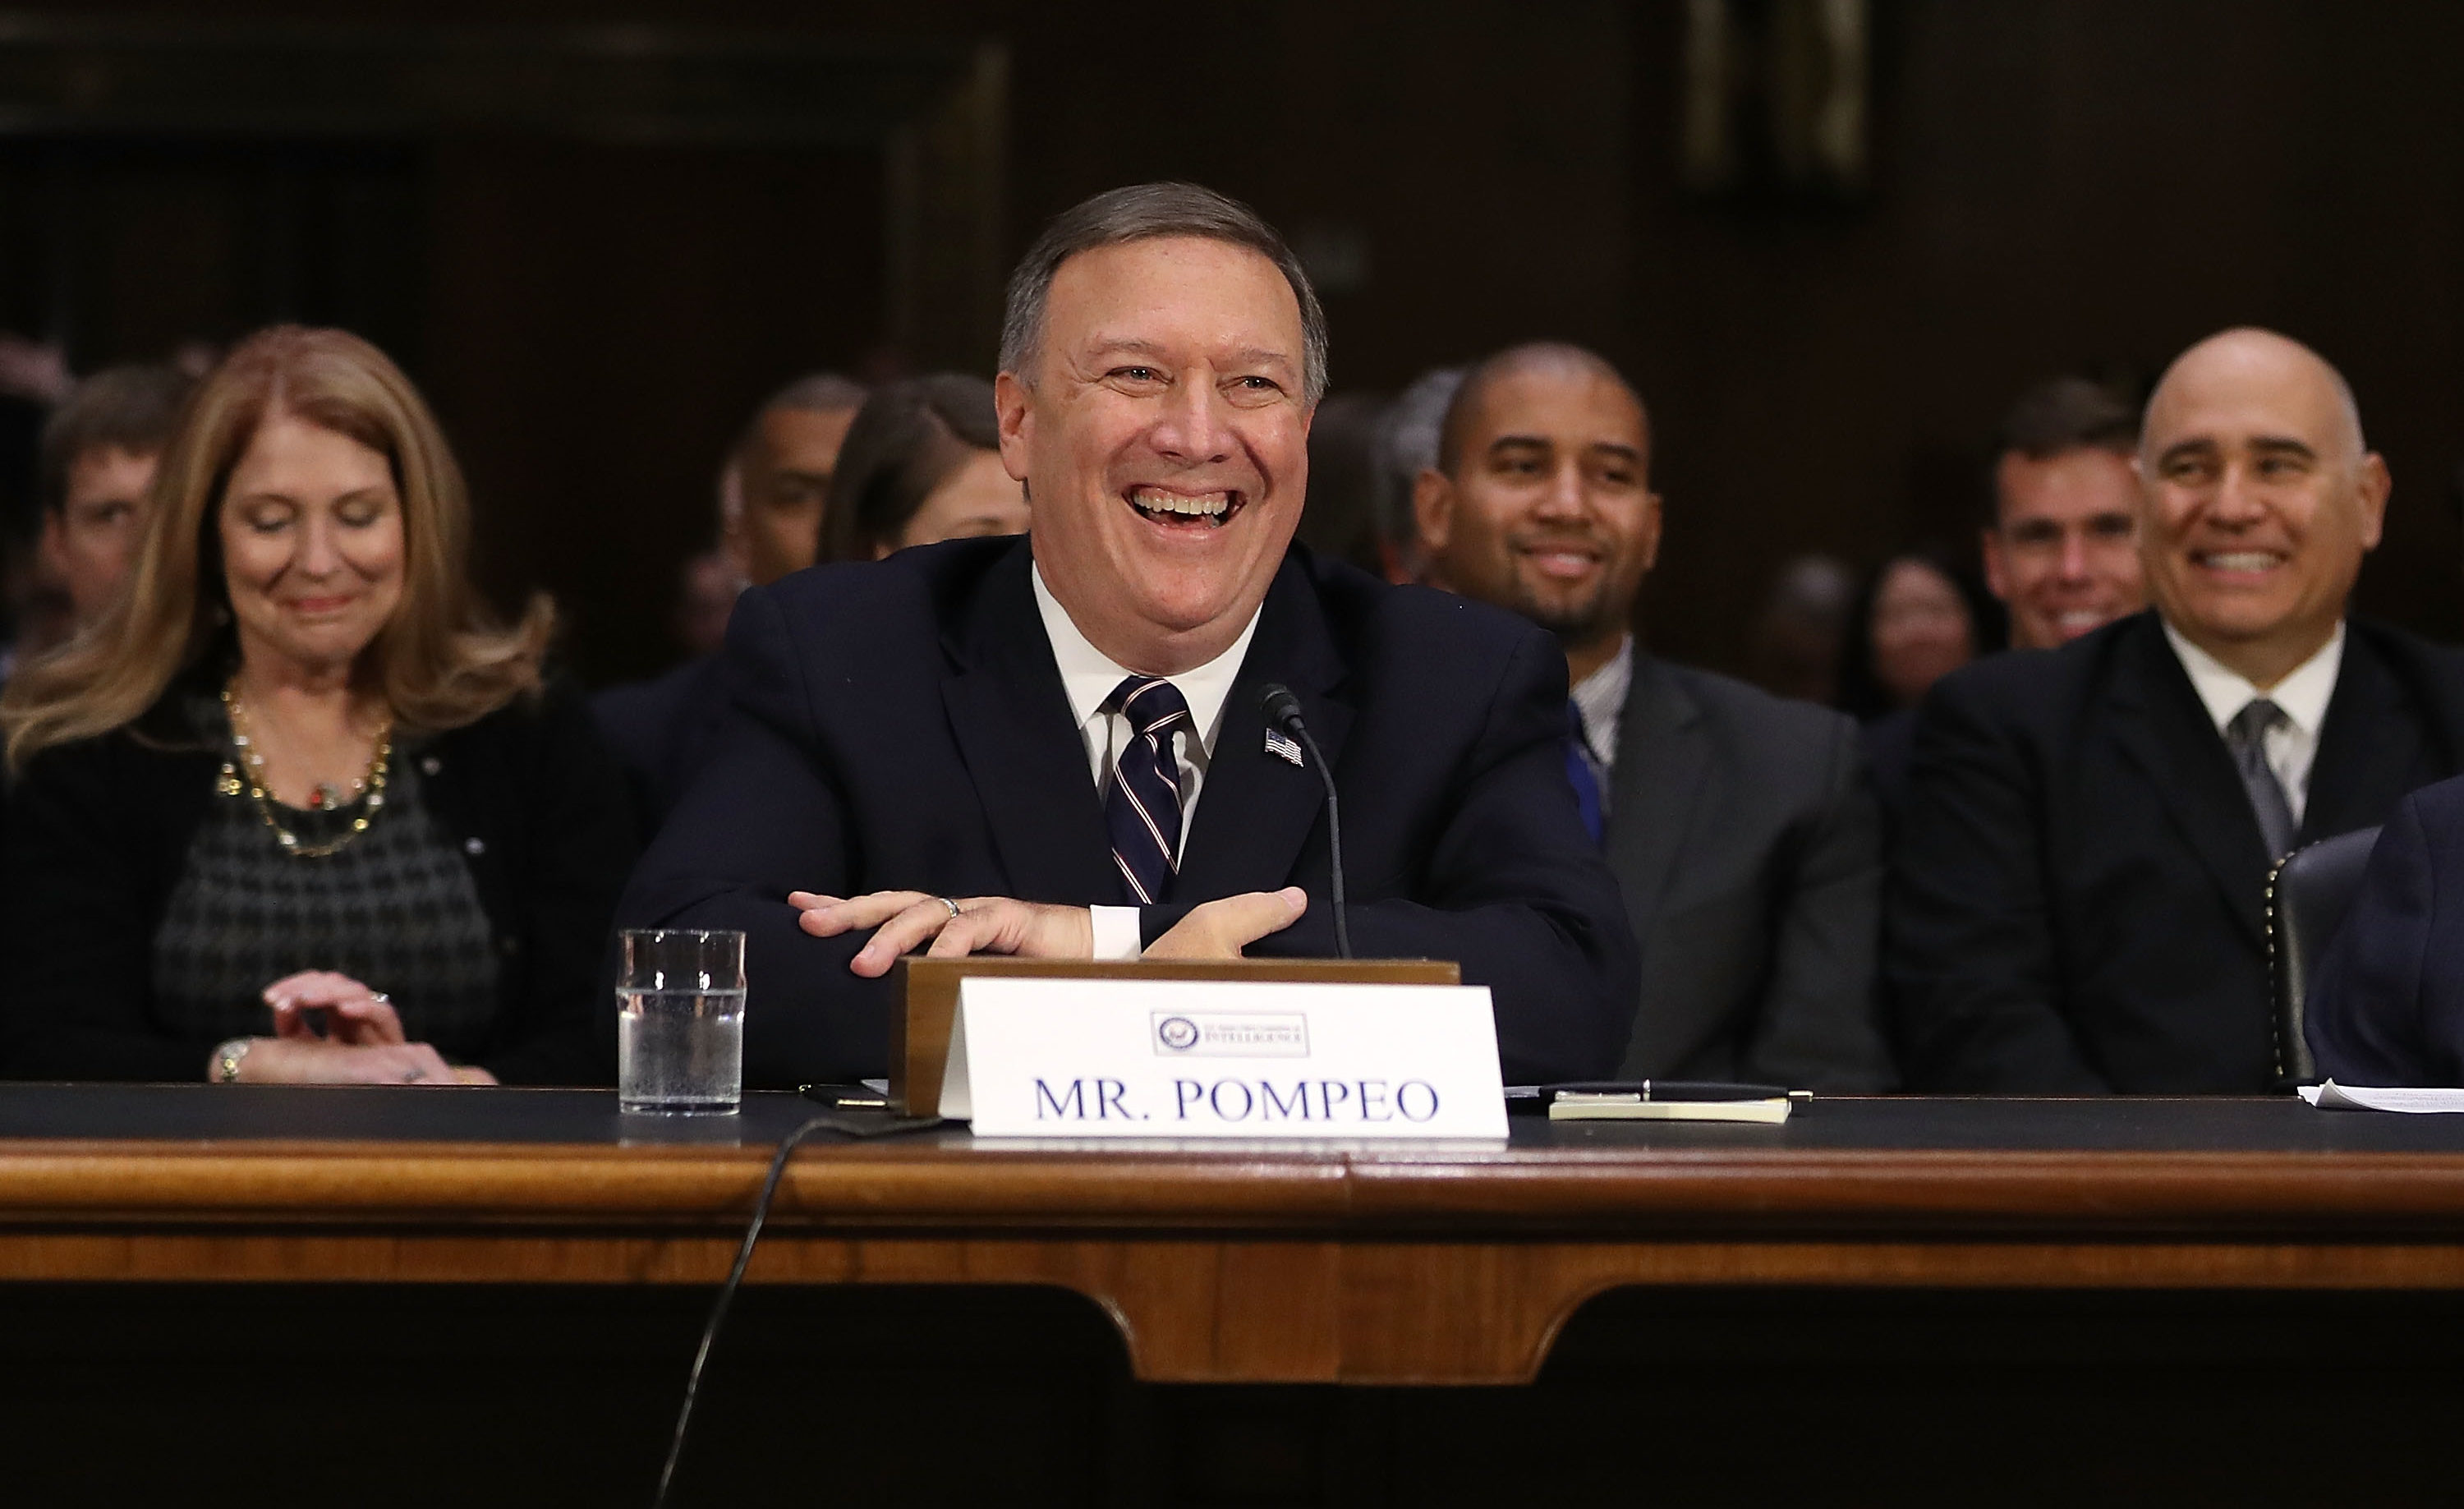 Mike Pompeo at a confirmation hearing before the Senate Intelligence Committee, Jan. 12, 2017. (Photo/JTA-Joe Raedle-Getty Images)